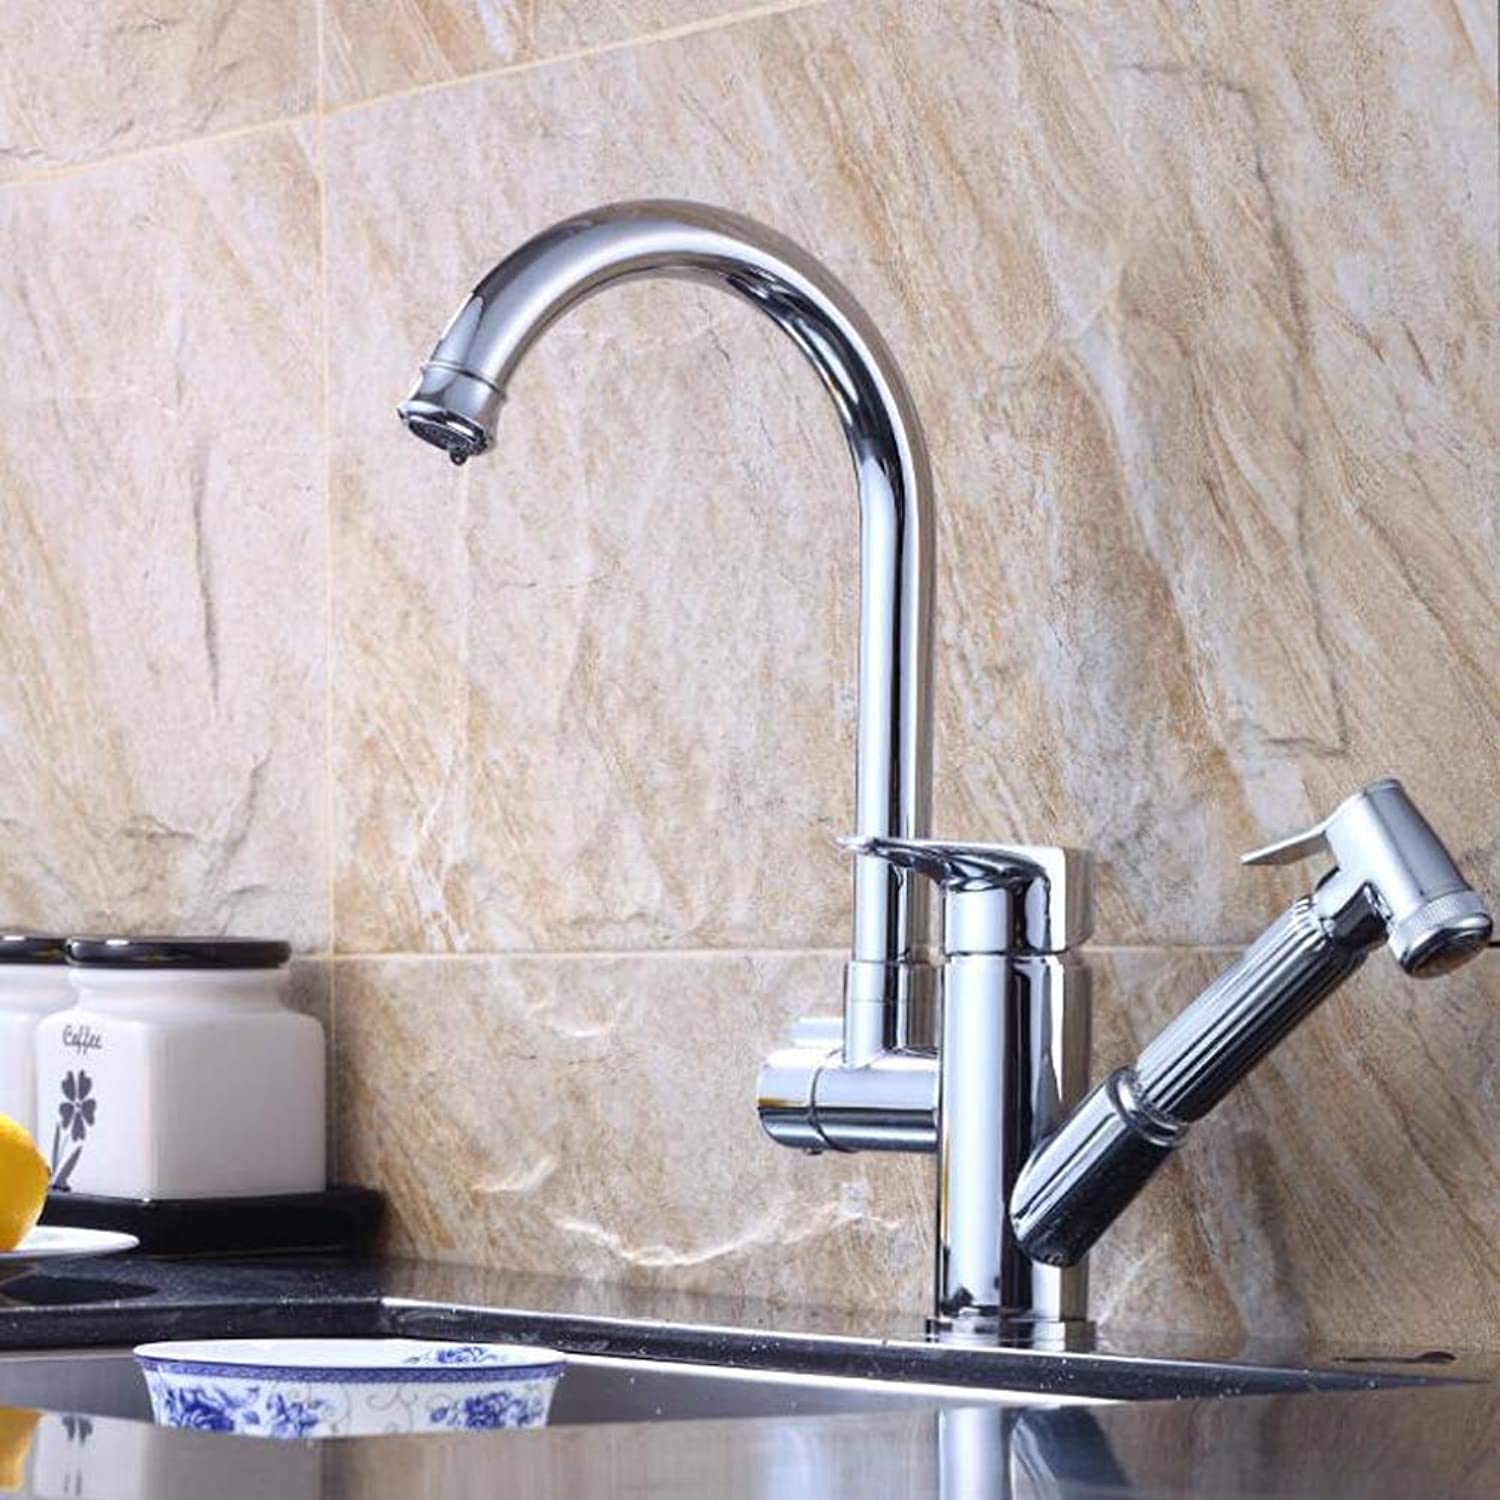 Bathroom Kitchen Sink Faucet,Silver One Handle Dual Functional Shower Head Pull-Out Hand-Shower Hot aBrass Chrome.